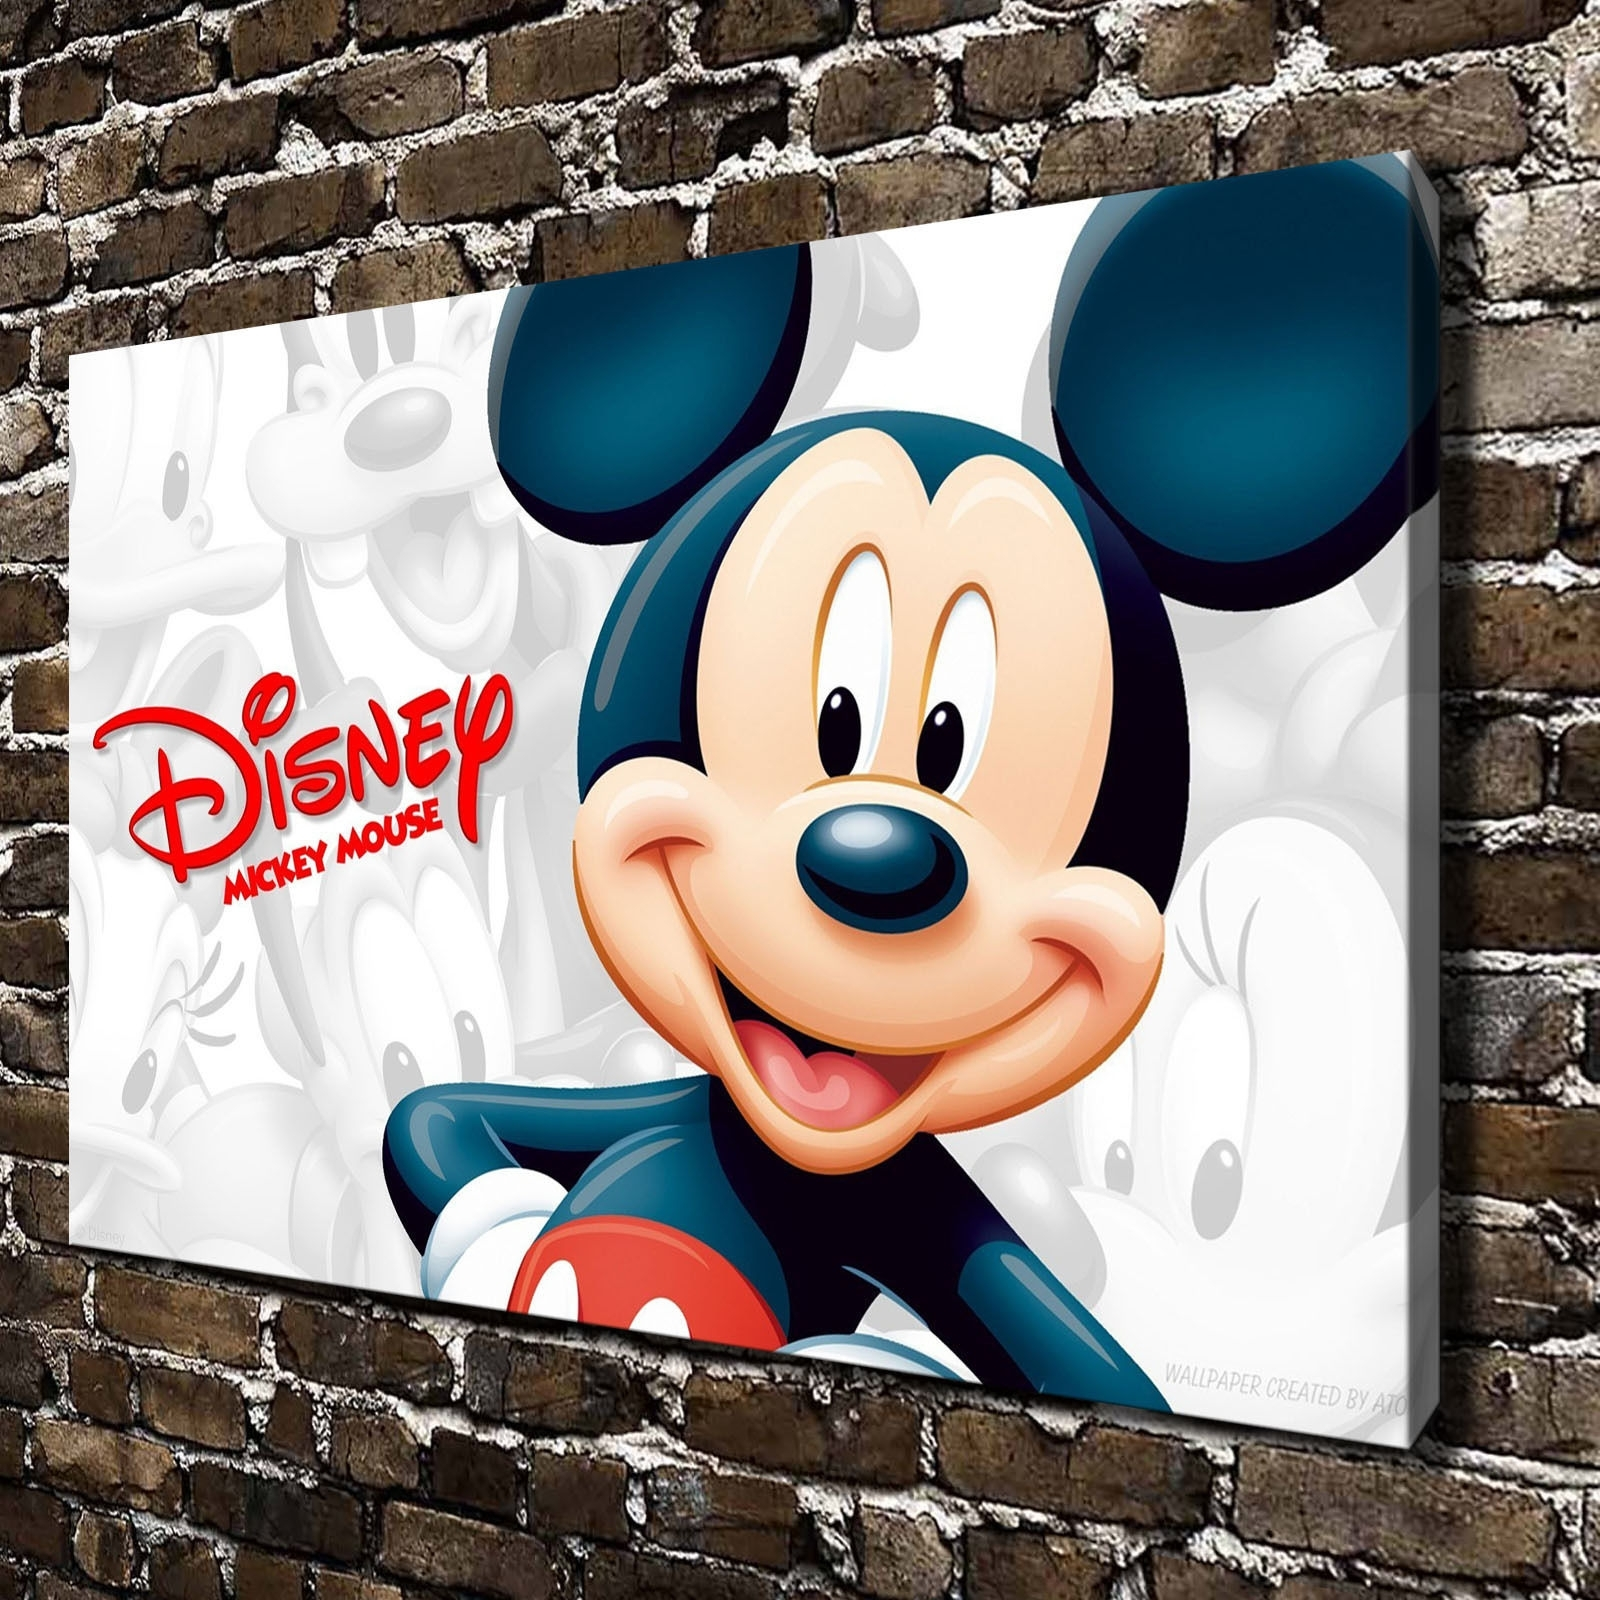 Disney Mickey Mouse Paintings Hd Print On Canvas Home Decor Wall Art regarding Mickey Mouse Canvas Wall Art (Image 8 of 20)